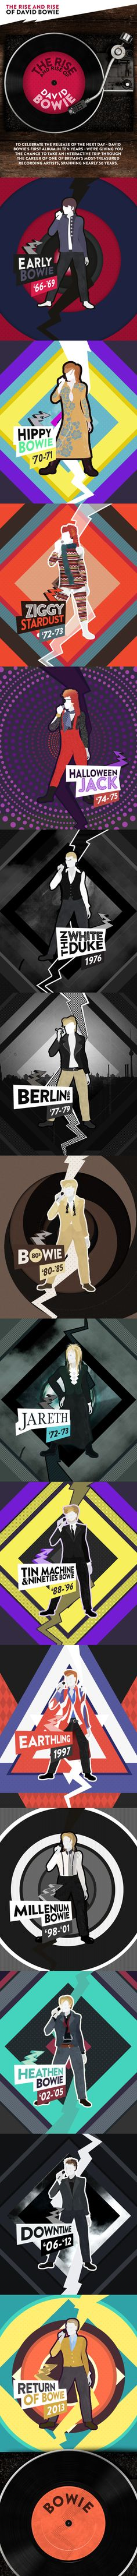 See David Bowies Career With New Interactive Timeline | Music News | Rolling Stone